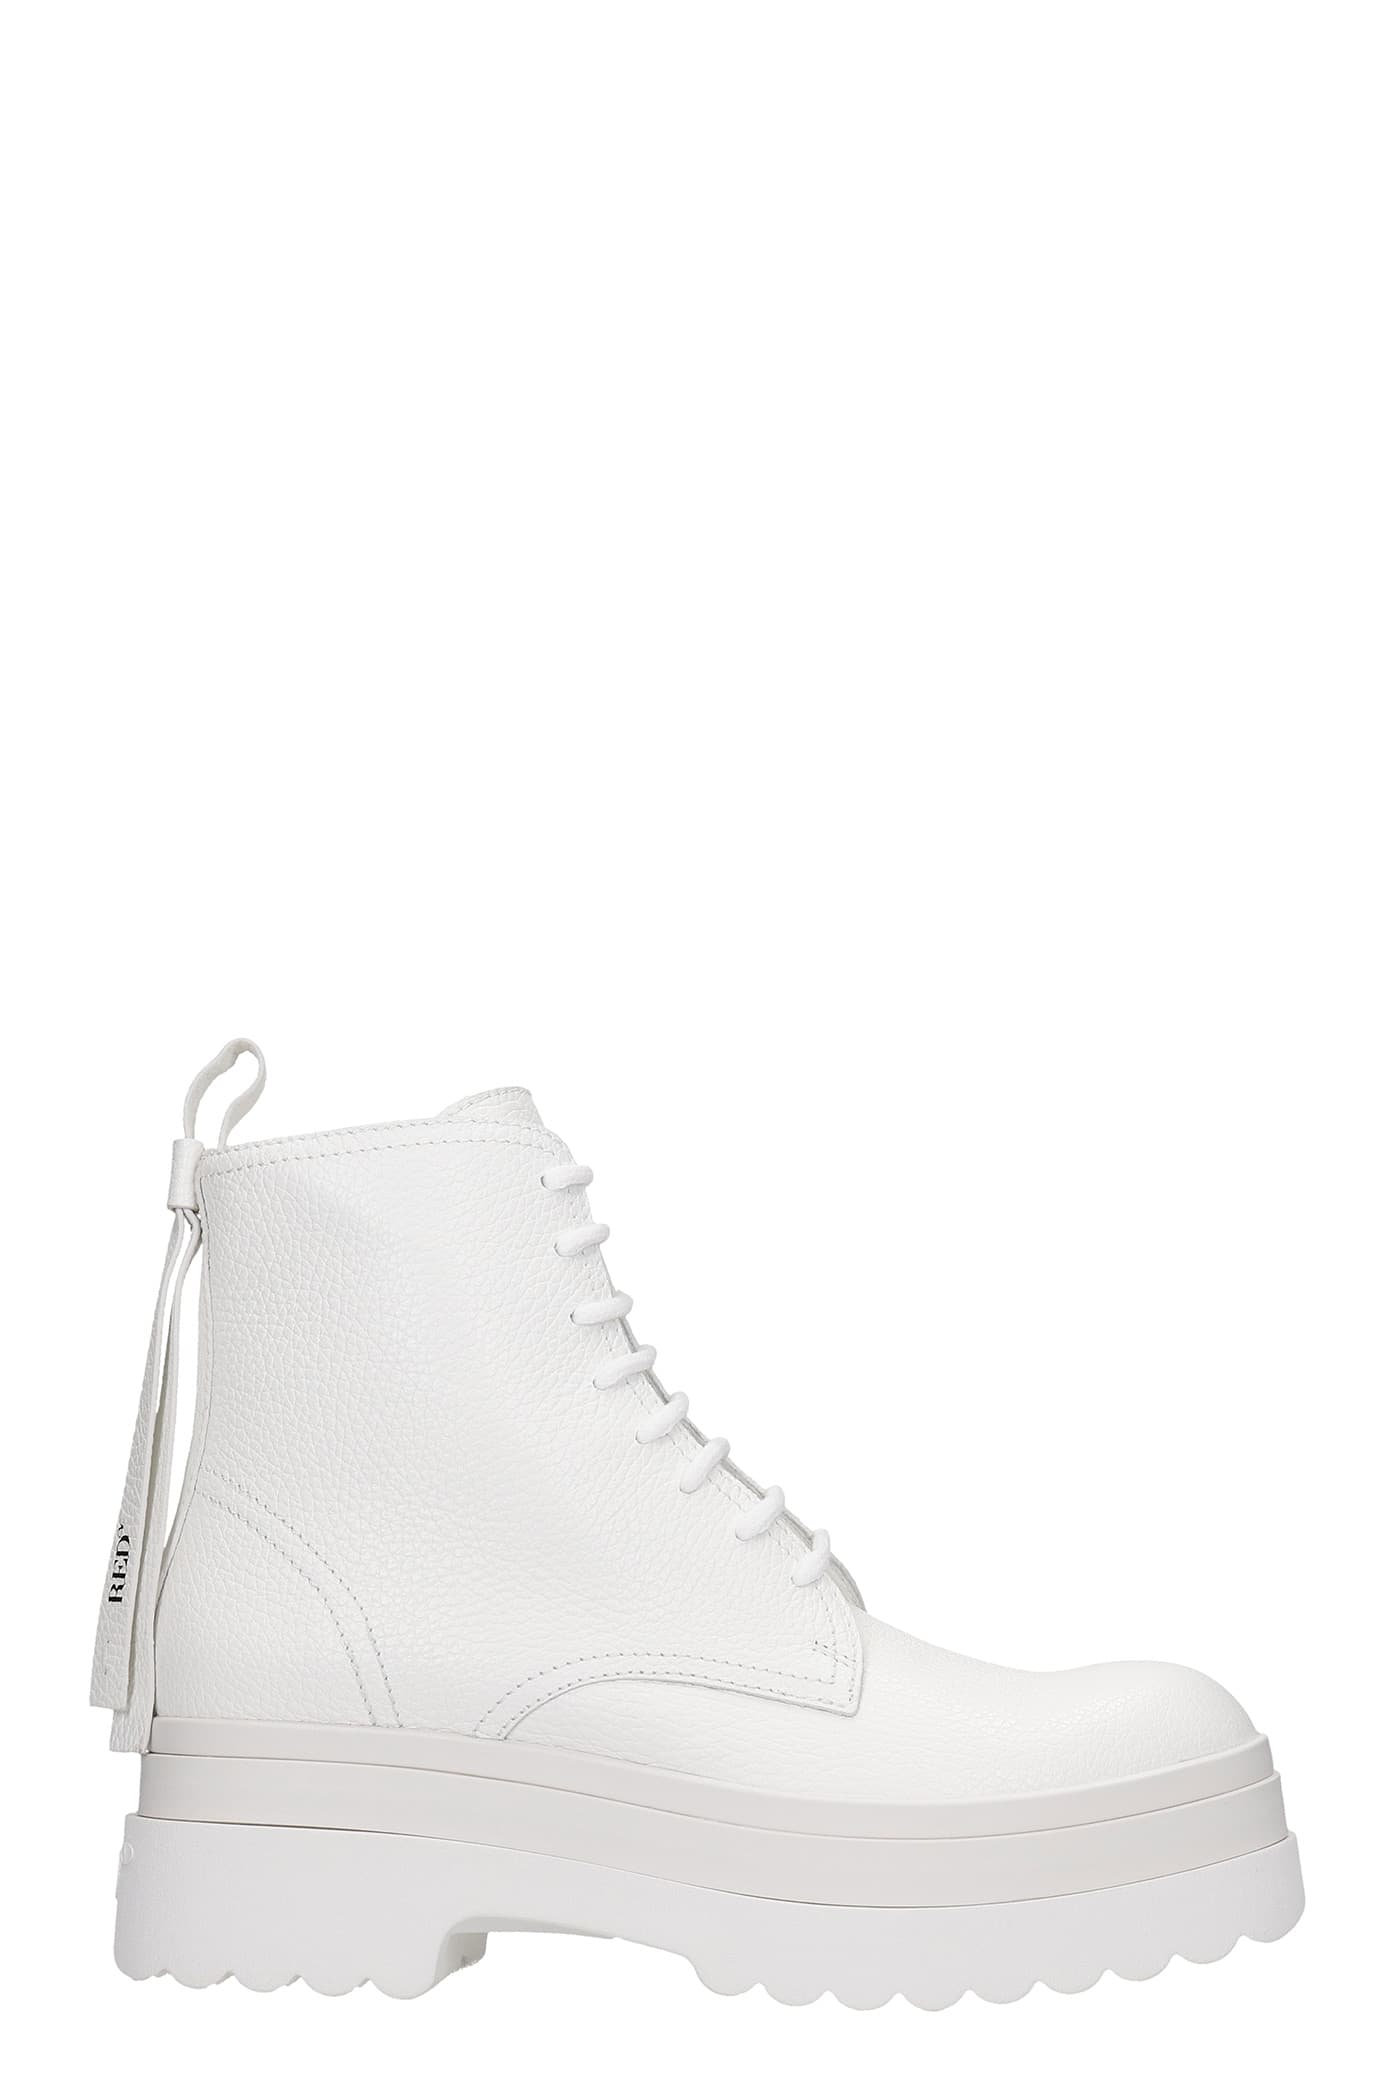 Red Valentino Leathers COMBAT BOOTS IN WHITE LEATHER